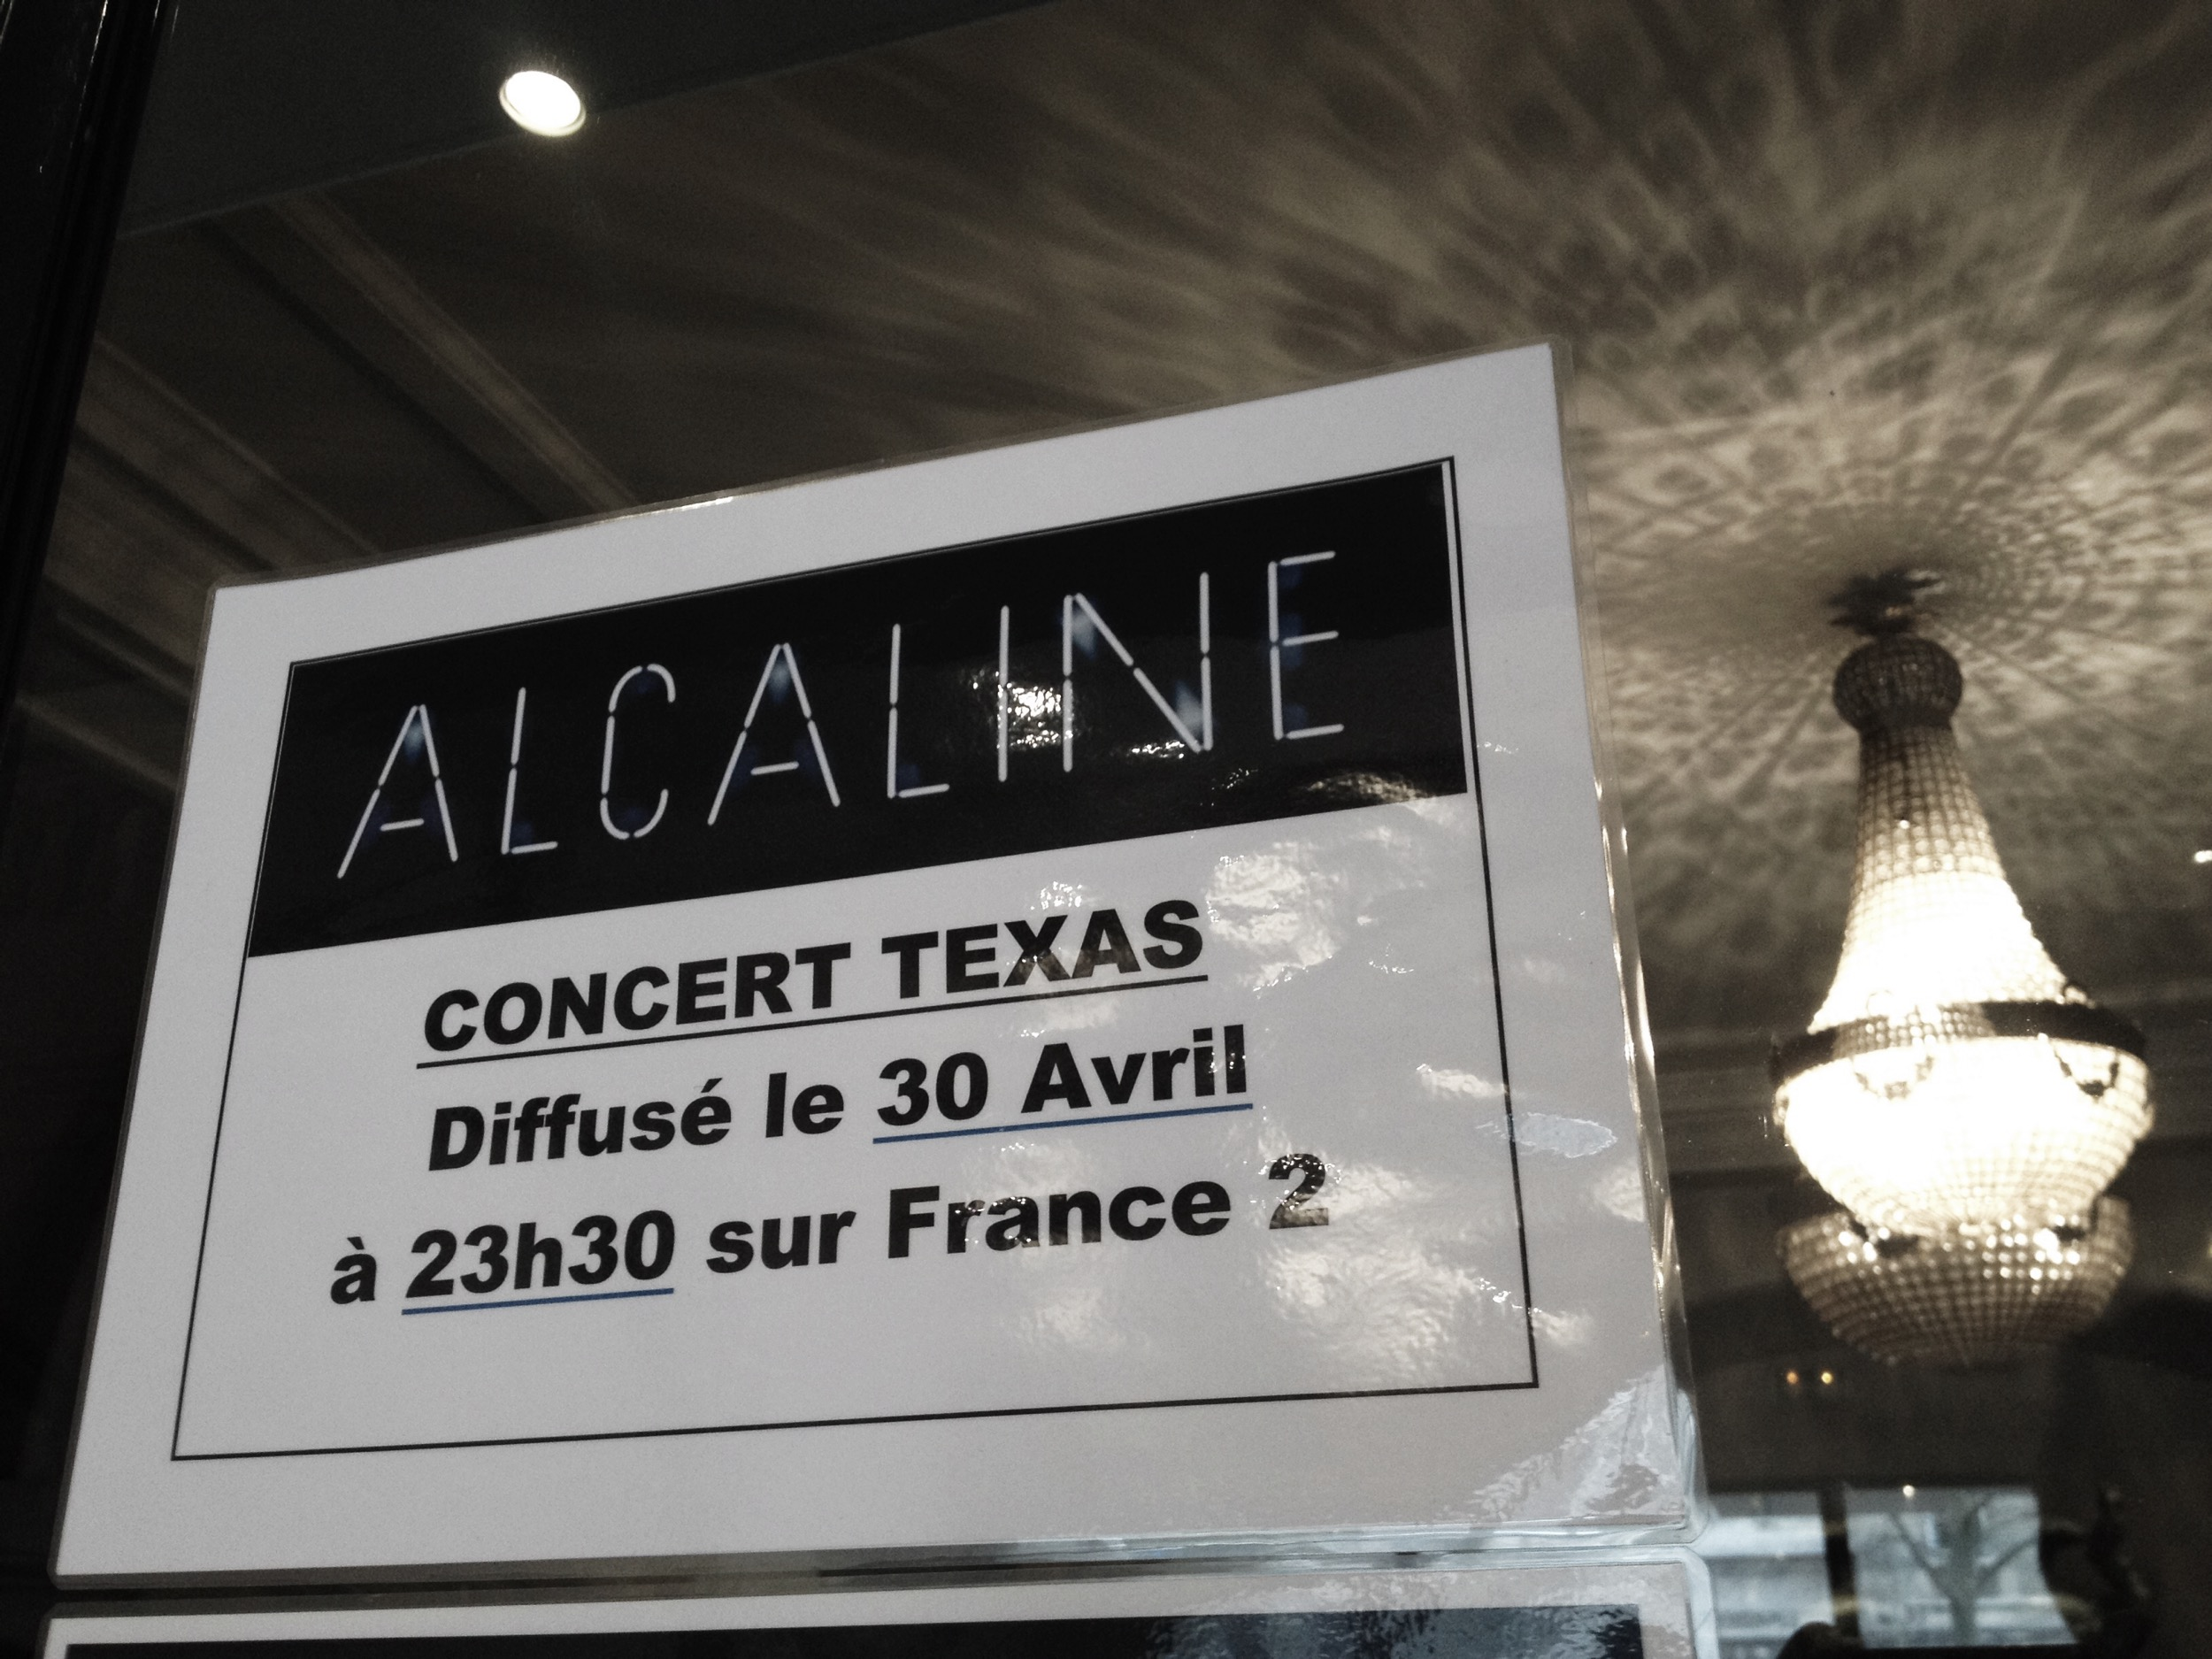 Texas Sharleen Spiteri concert live Le Trianon émission musicale Alcaline diffusion 30 avril 2015 sur France 2 album Texas 25 photo by United States of Paris blog